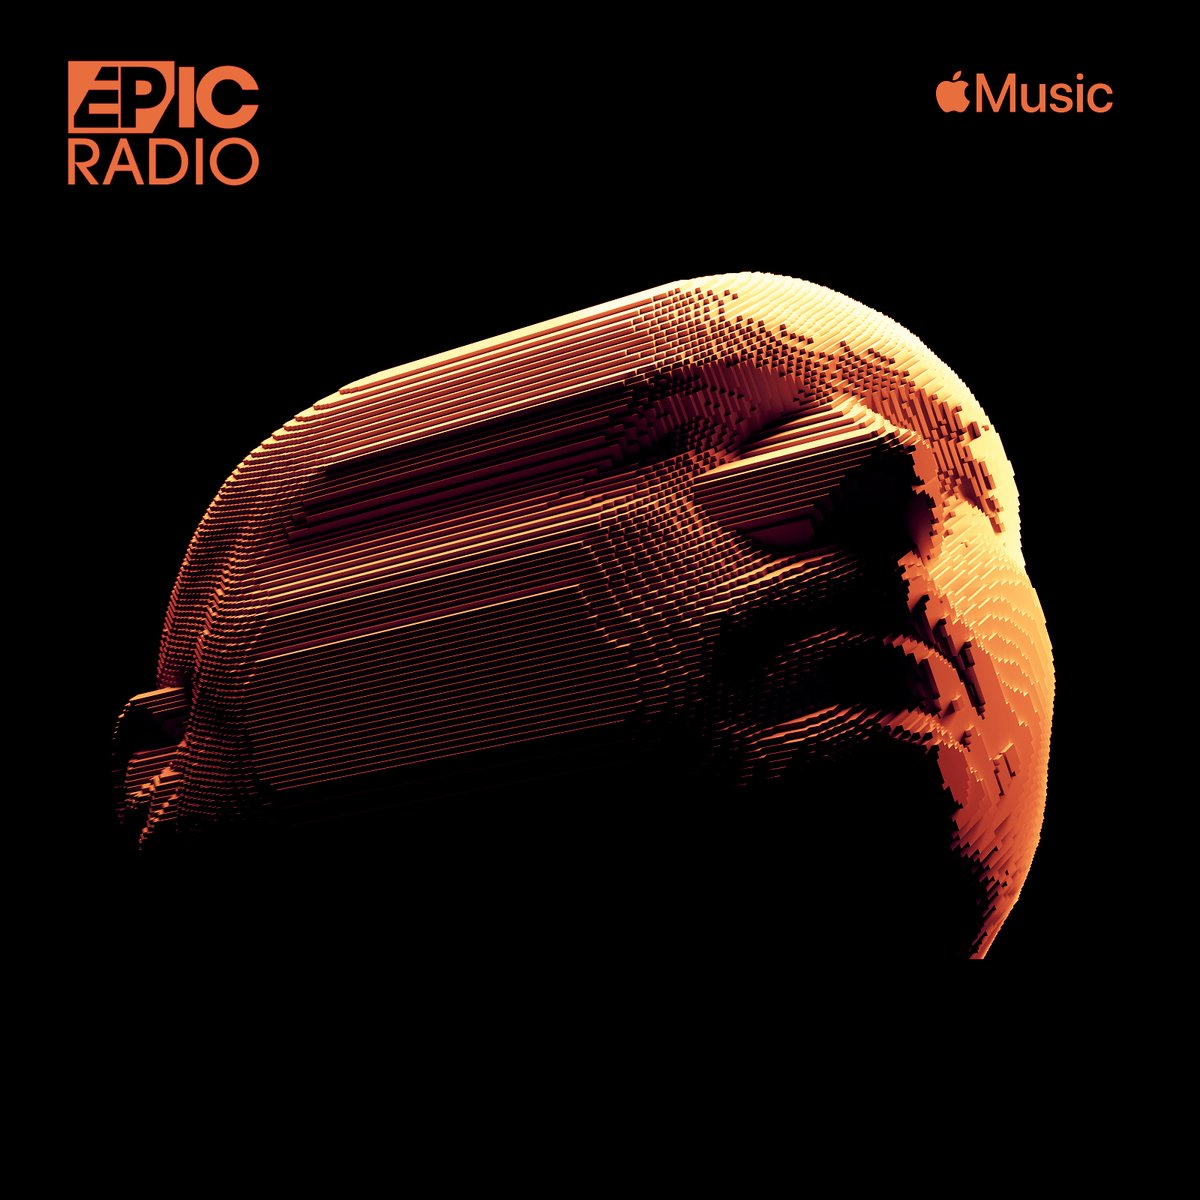 EPIC Radio @AppleMusic tomorrow! Final episode of this current season... 3pm LA // 6pm NY // 11pm LDN See you all online #epicradio